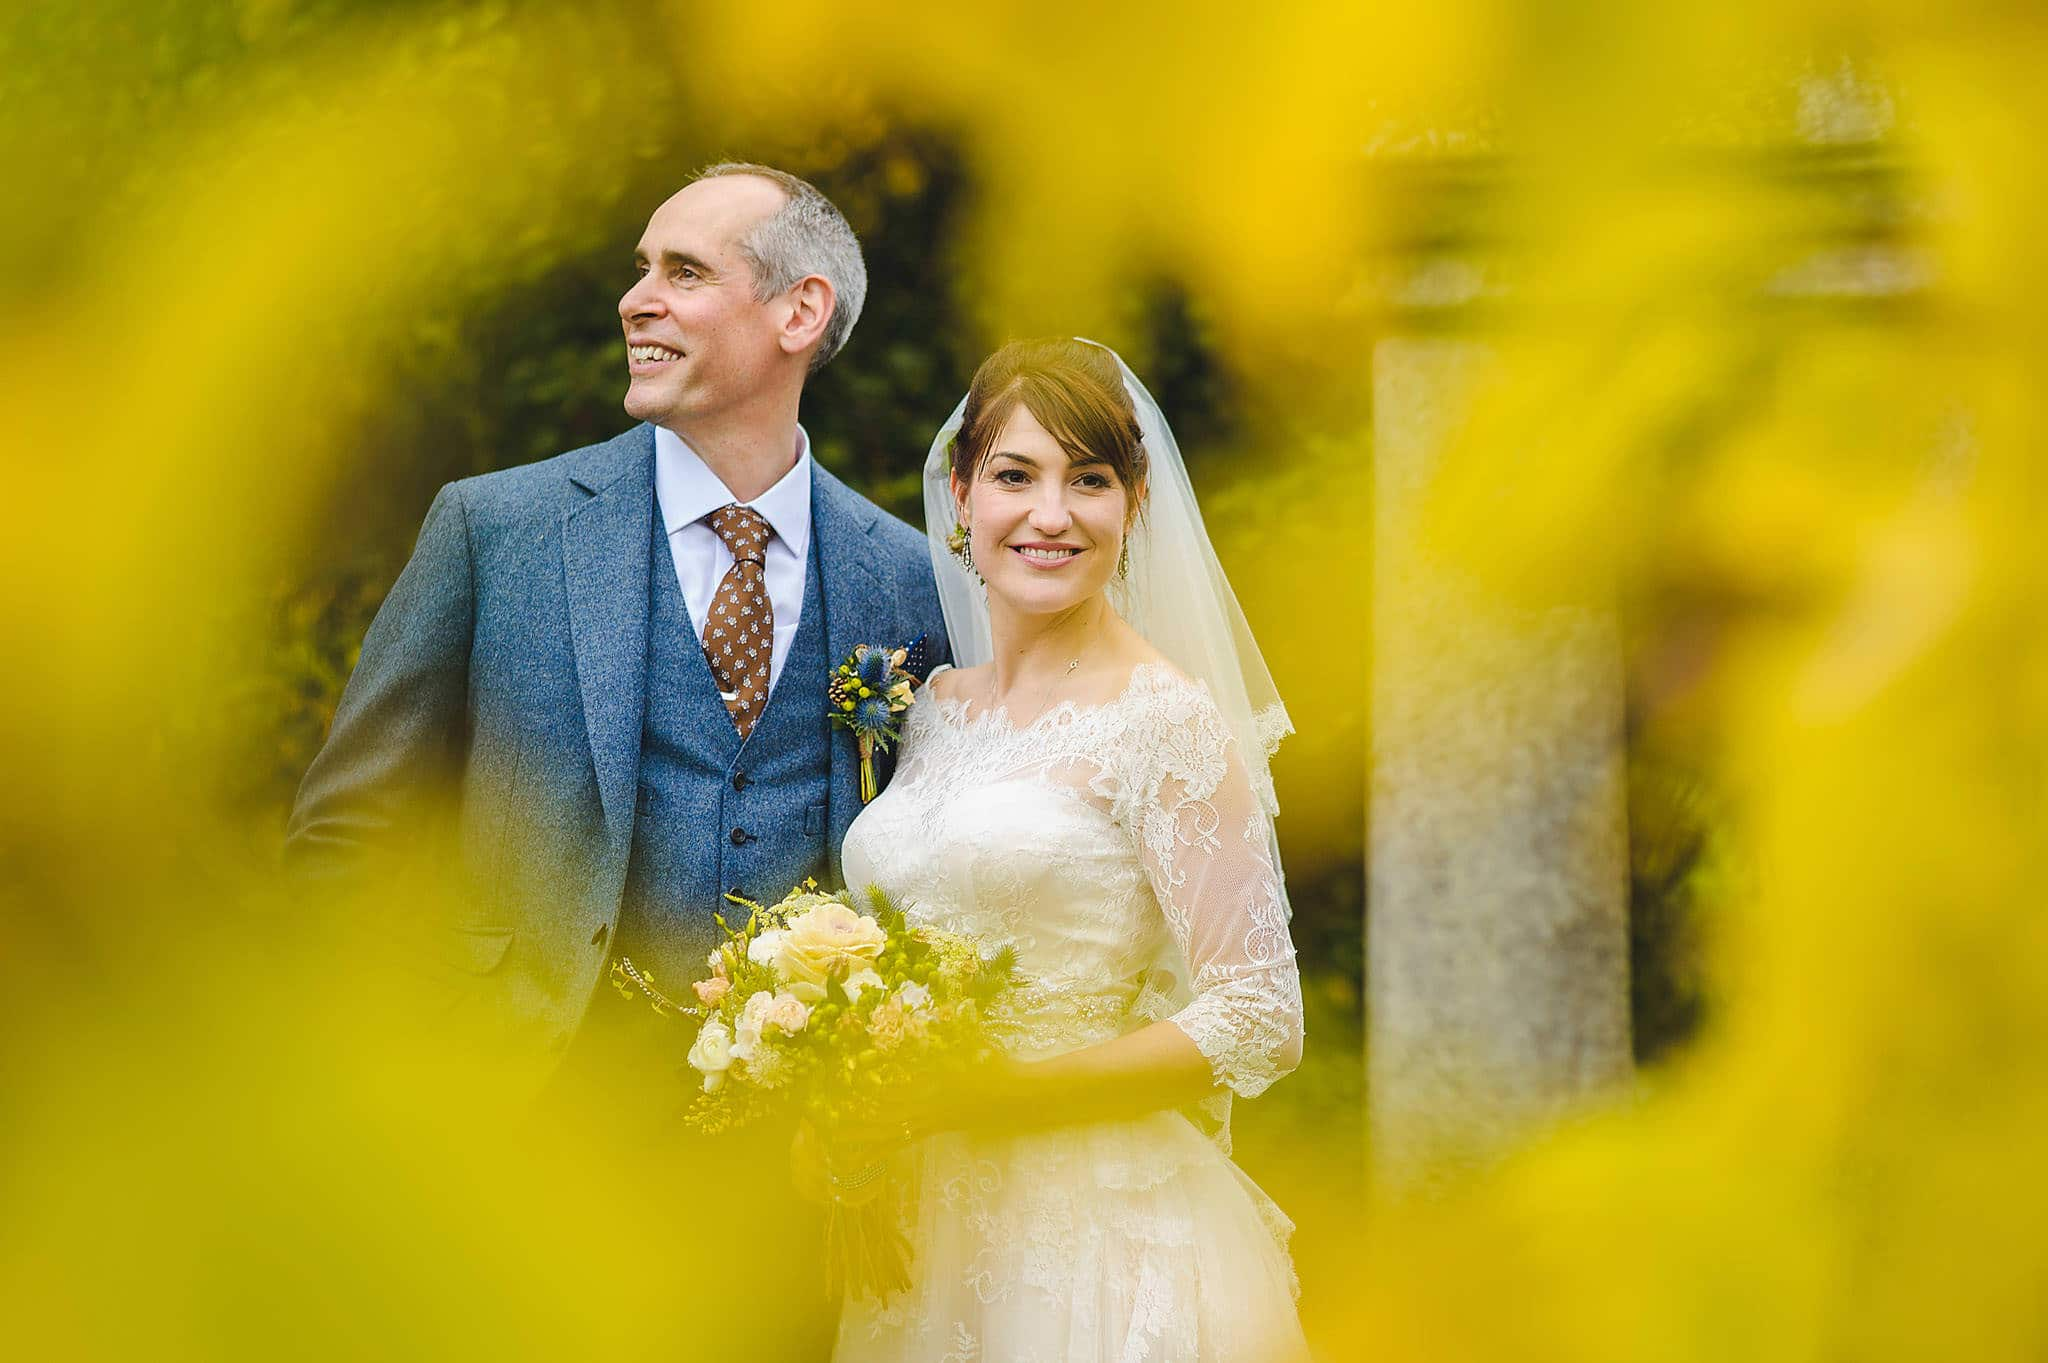 wedding photography midlands 27 - Midlands wedding photography - 2015 Review